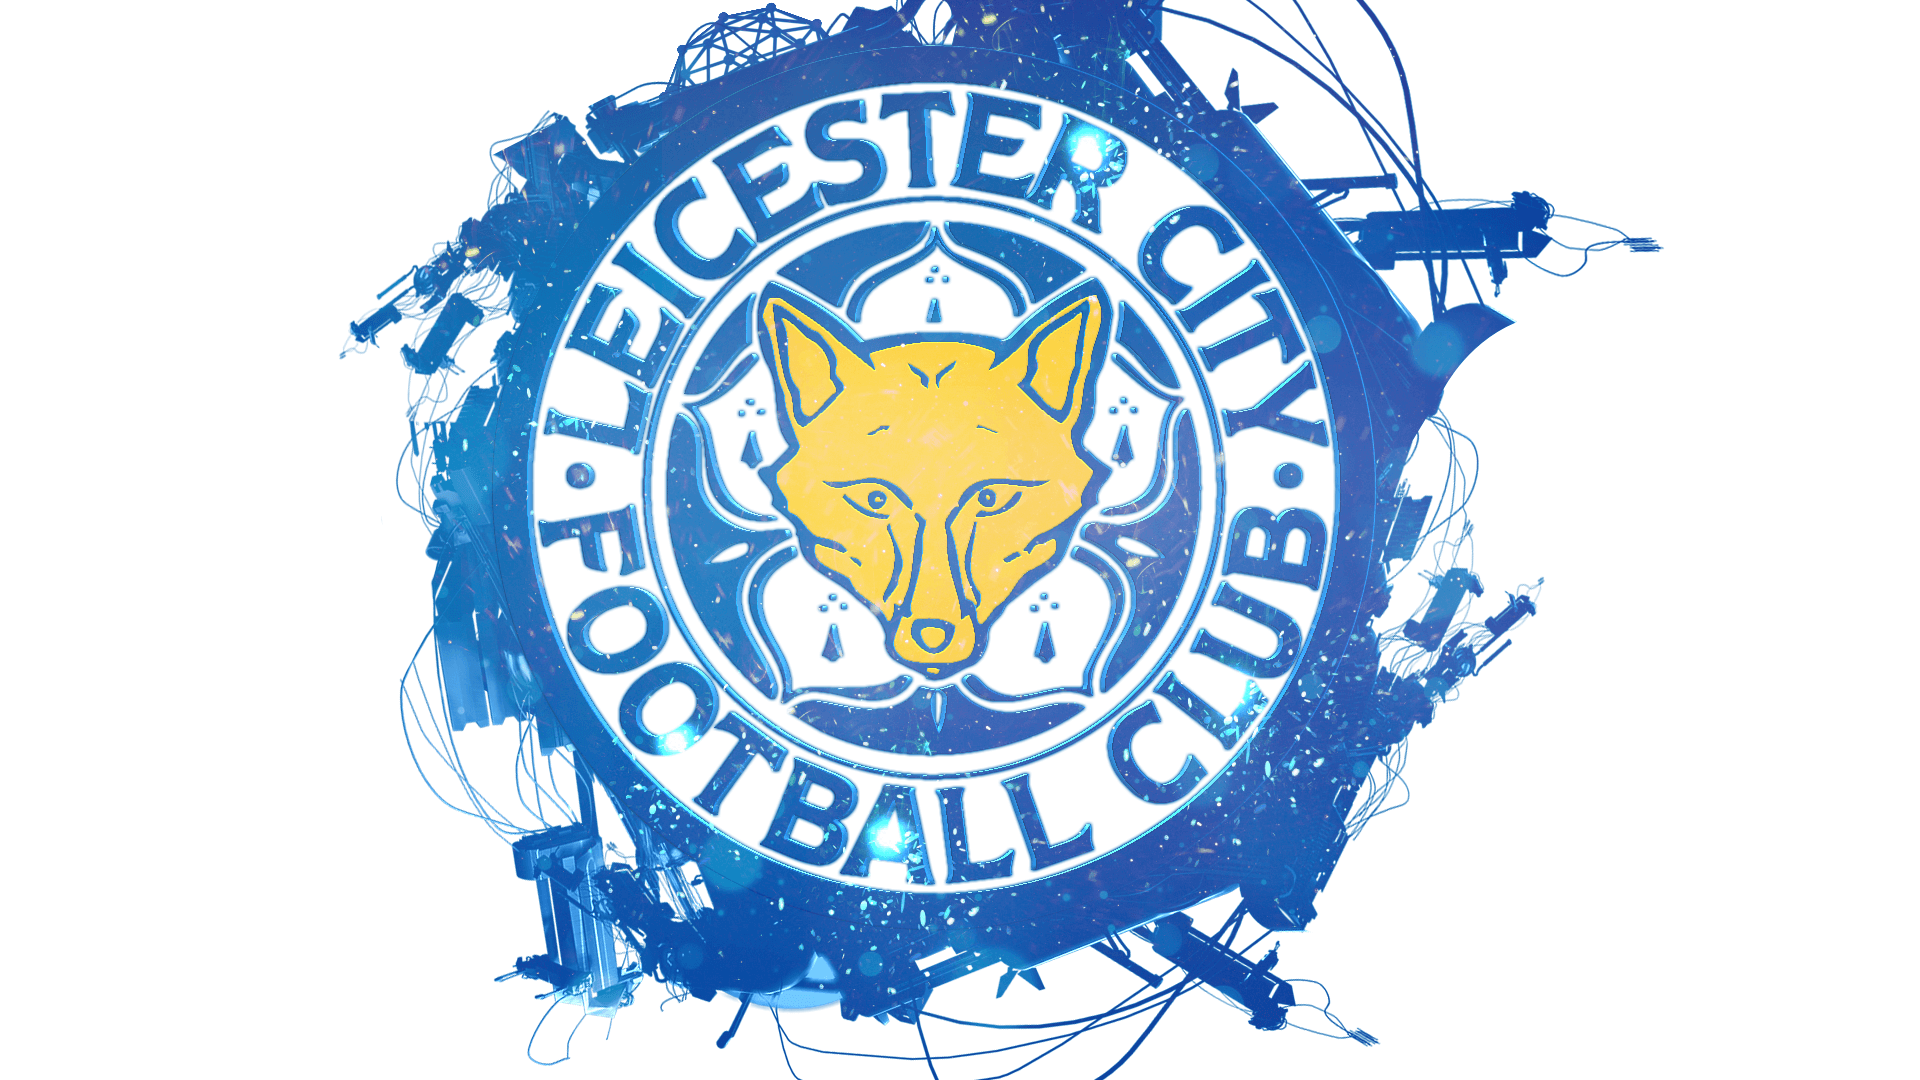 Premier Leicester City Football Wallpaper - Leicester City Football Club , HD Wallpaper & Backgrounds